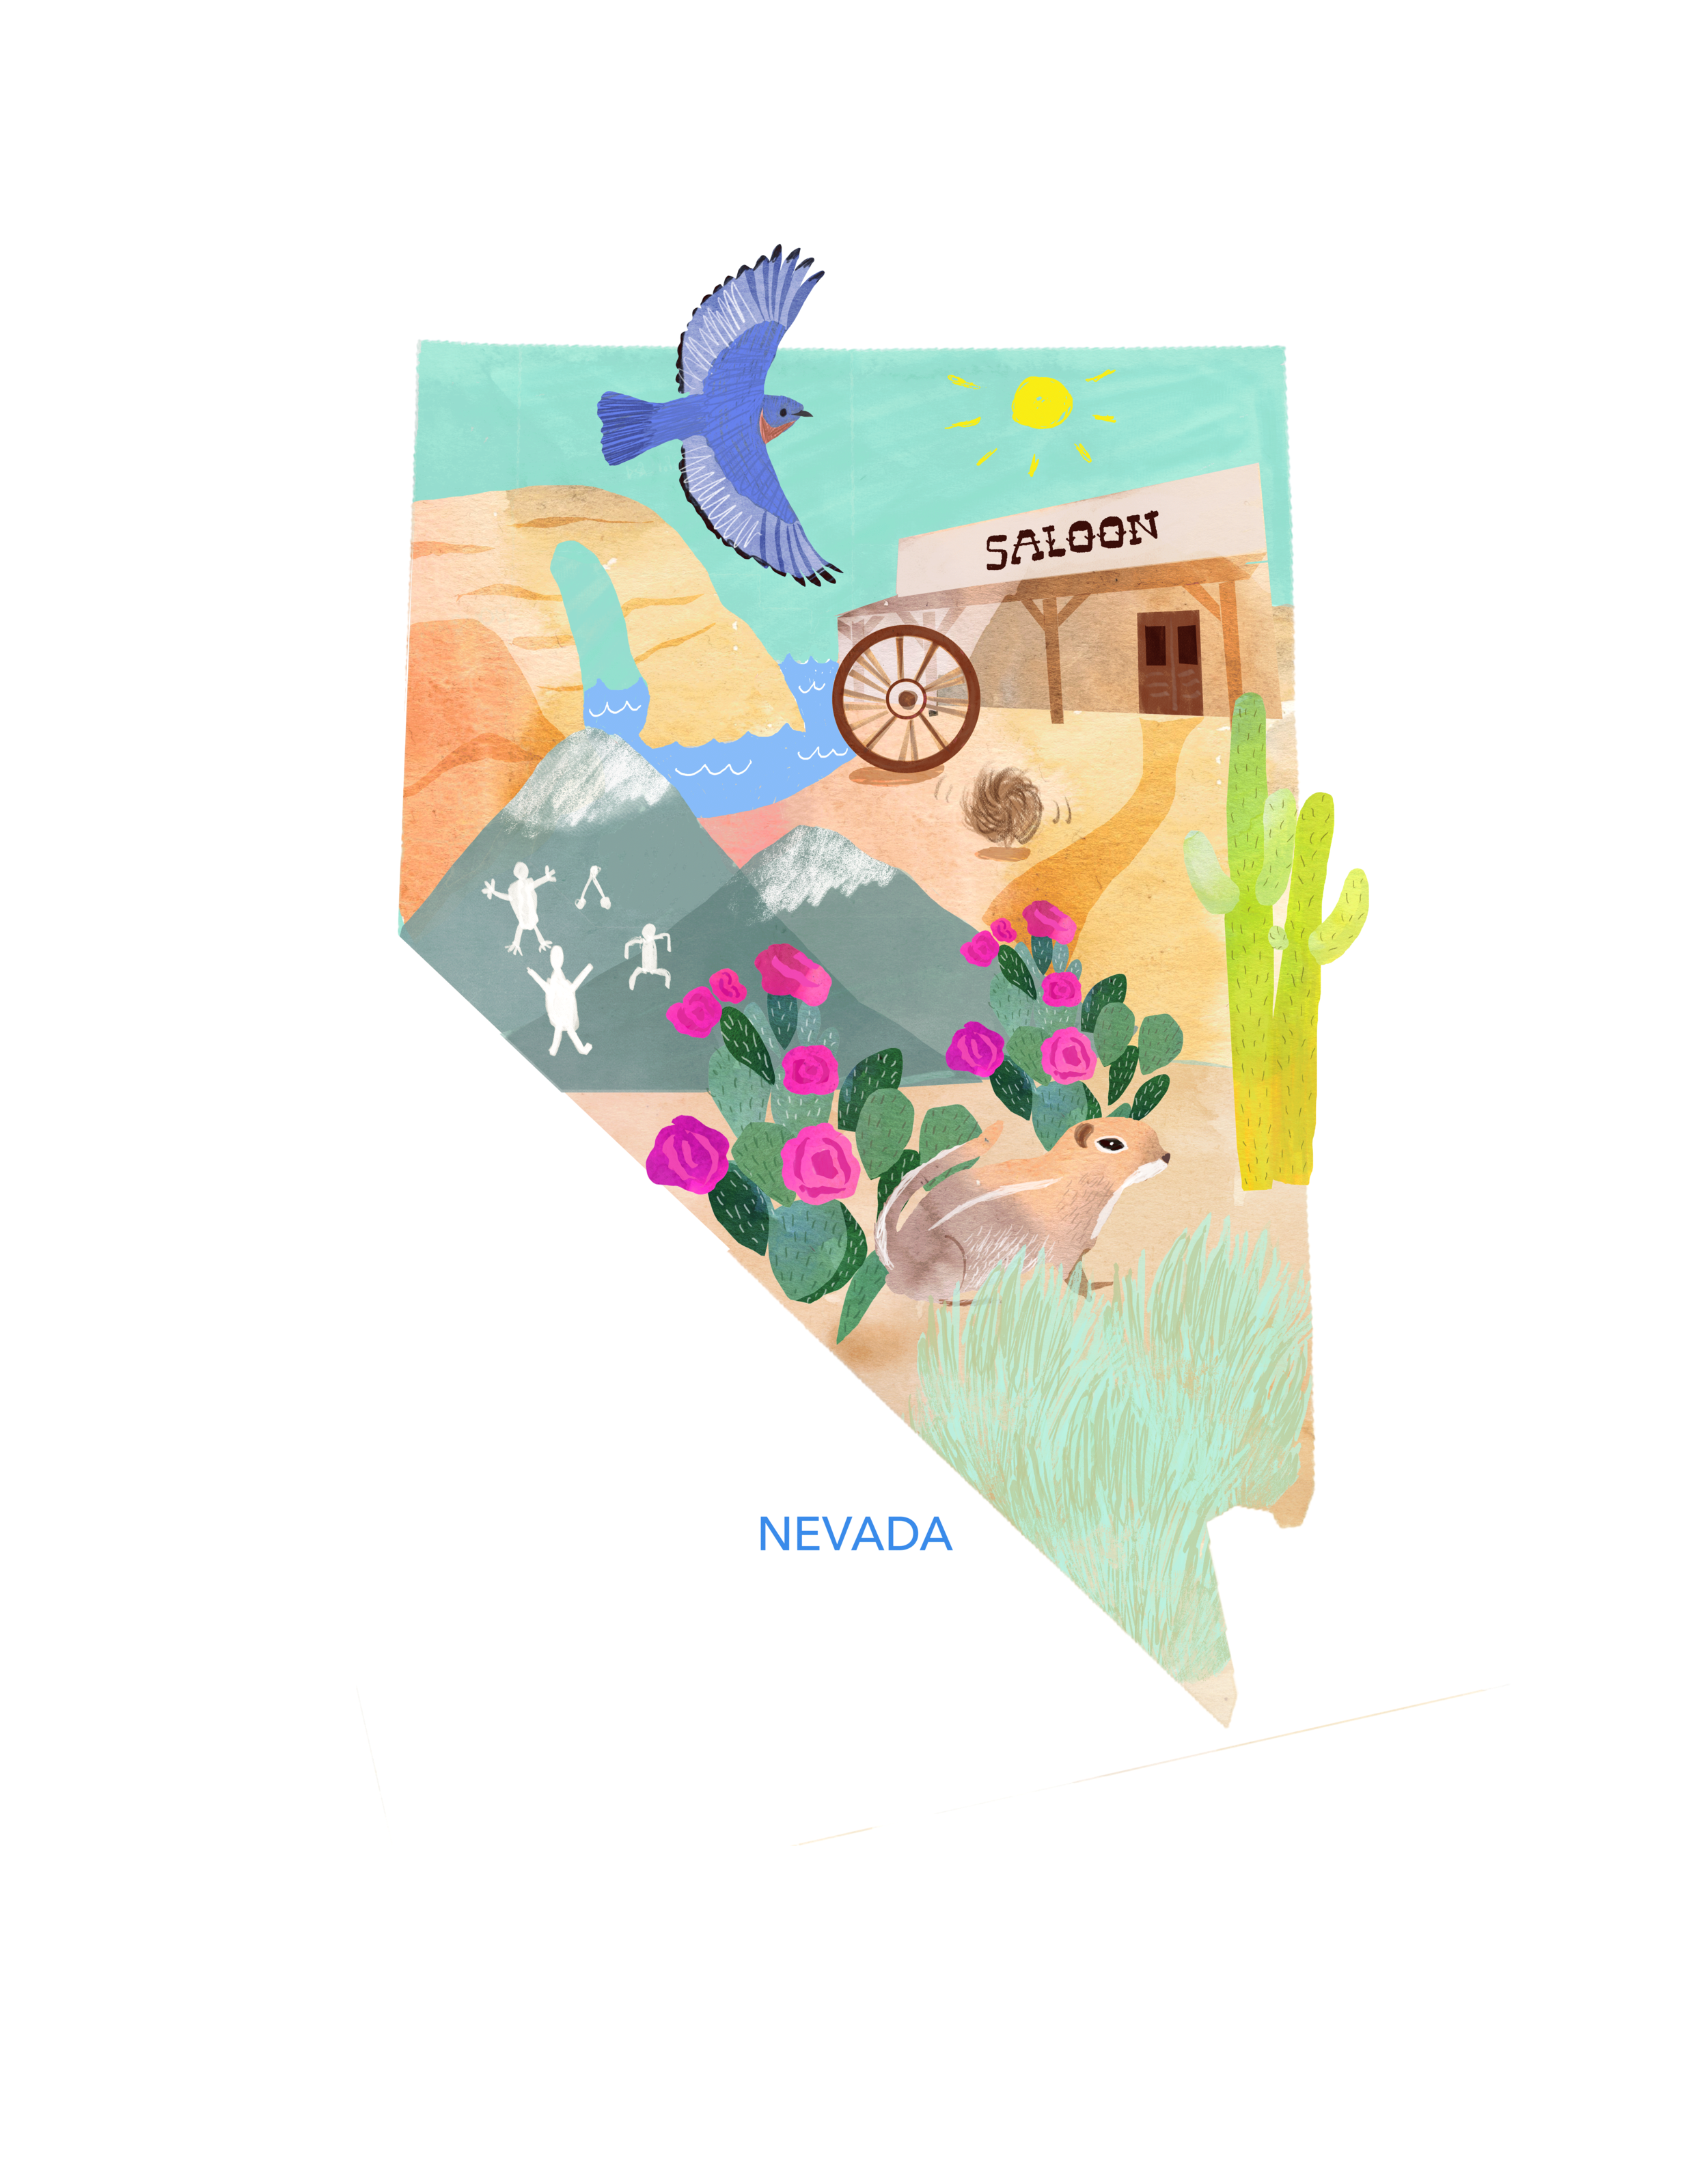 Nevada_11x14.png